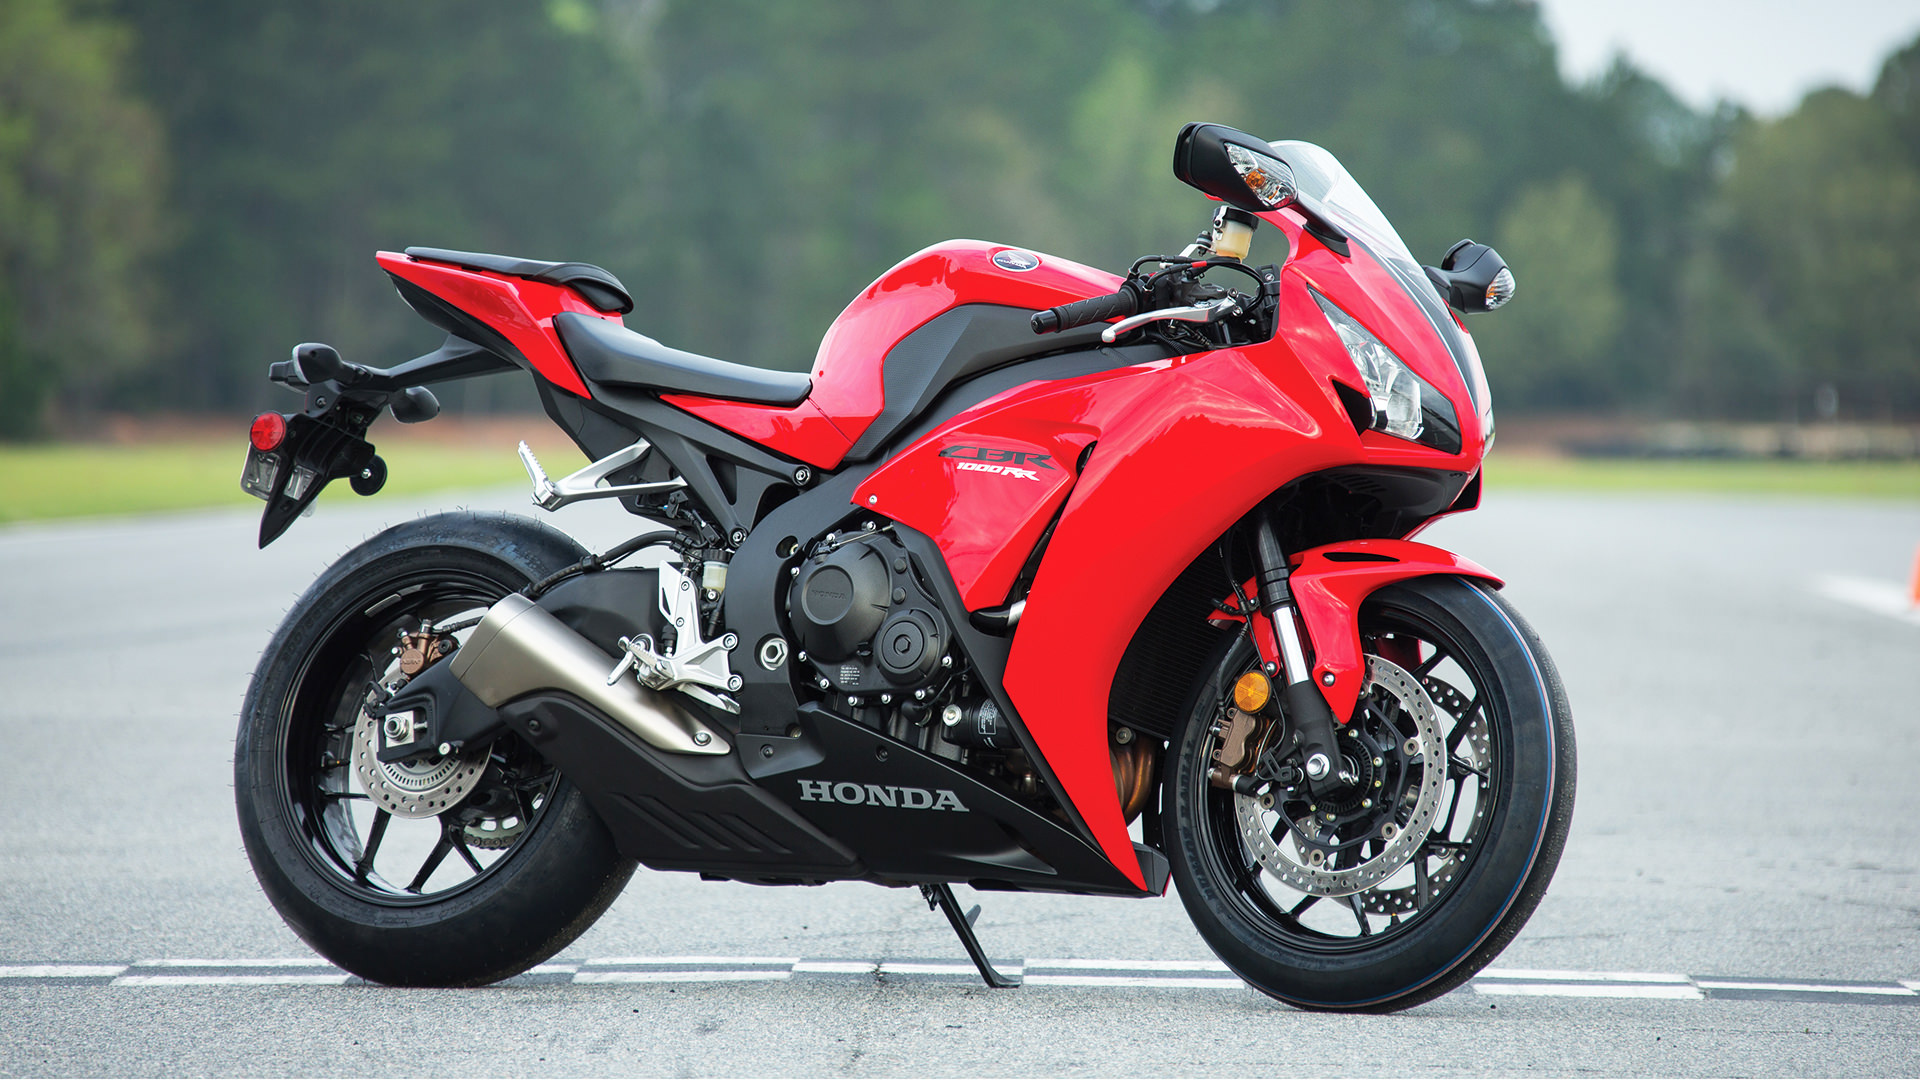 2016 honda cbr1000rr review specs pictures videos honda pro kevin. Black Bedroom Furniture Sets. Home Design Ideas